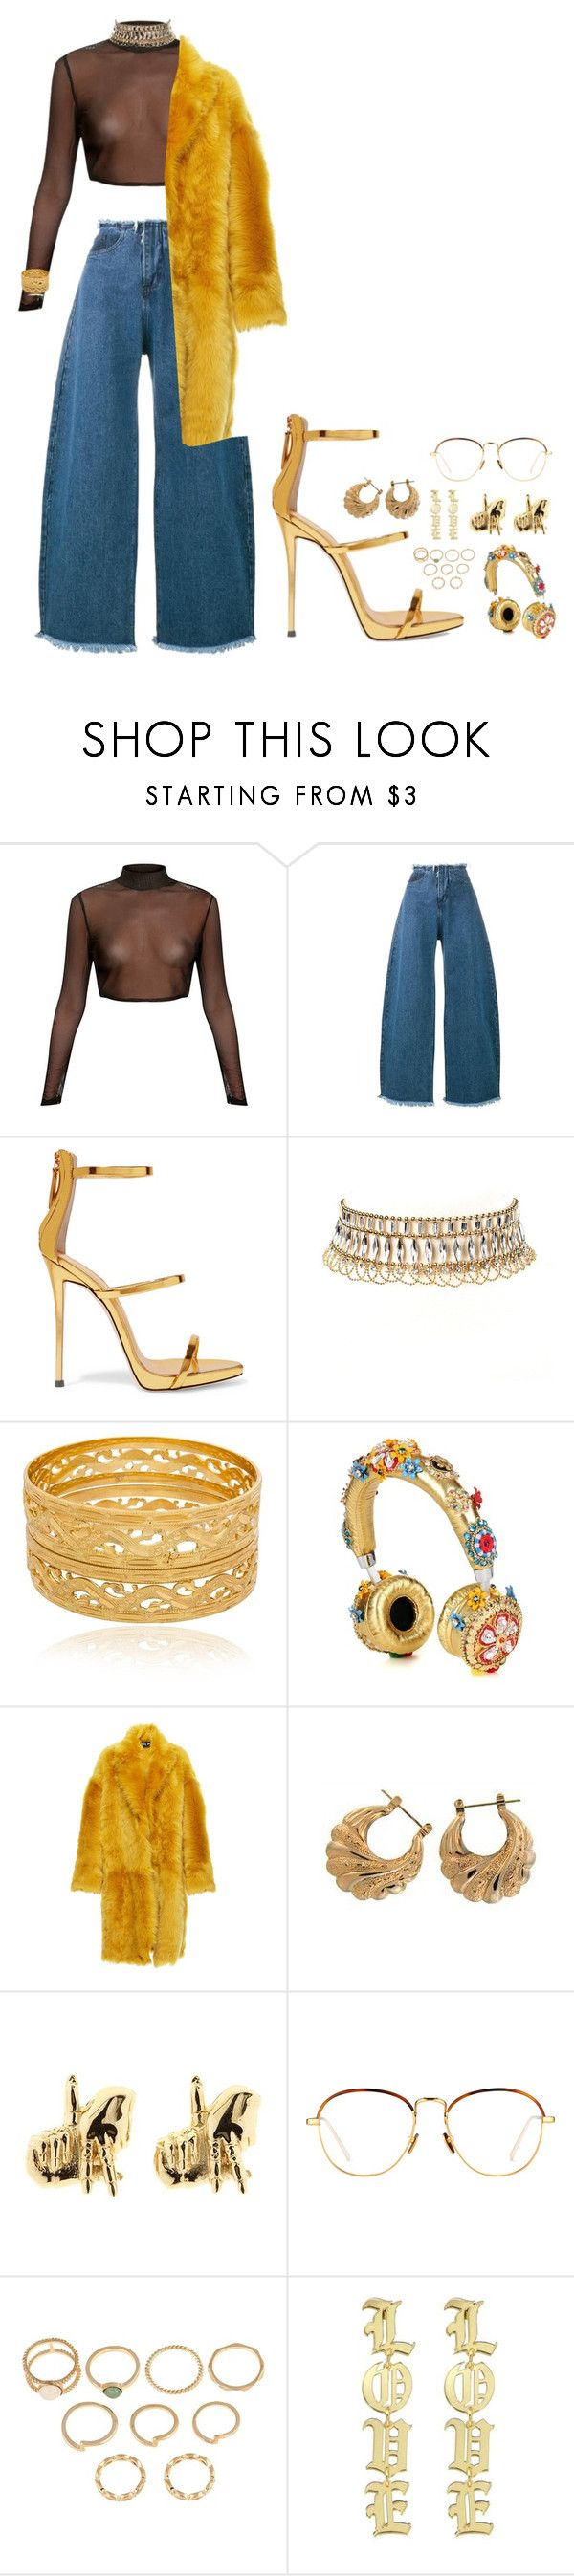 """Boujiee Casual."" by chanatelliii ❤ liked on Polyvore featuring Marques'Almeida, Giuseppe Zanotti, Amrita Singh, Dolce&Gabbana, Rochas, Han Cholo and Linda Farrow"